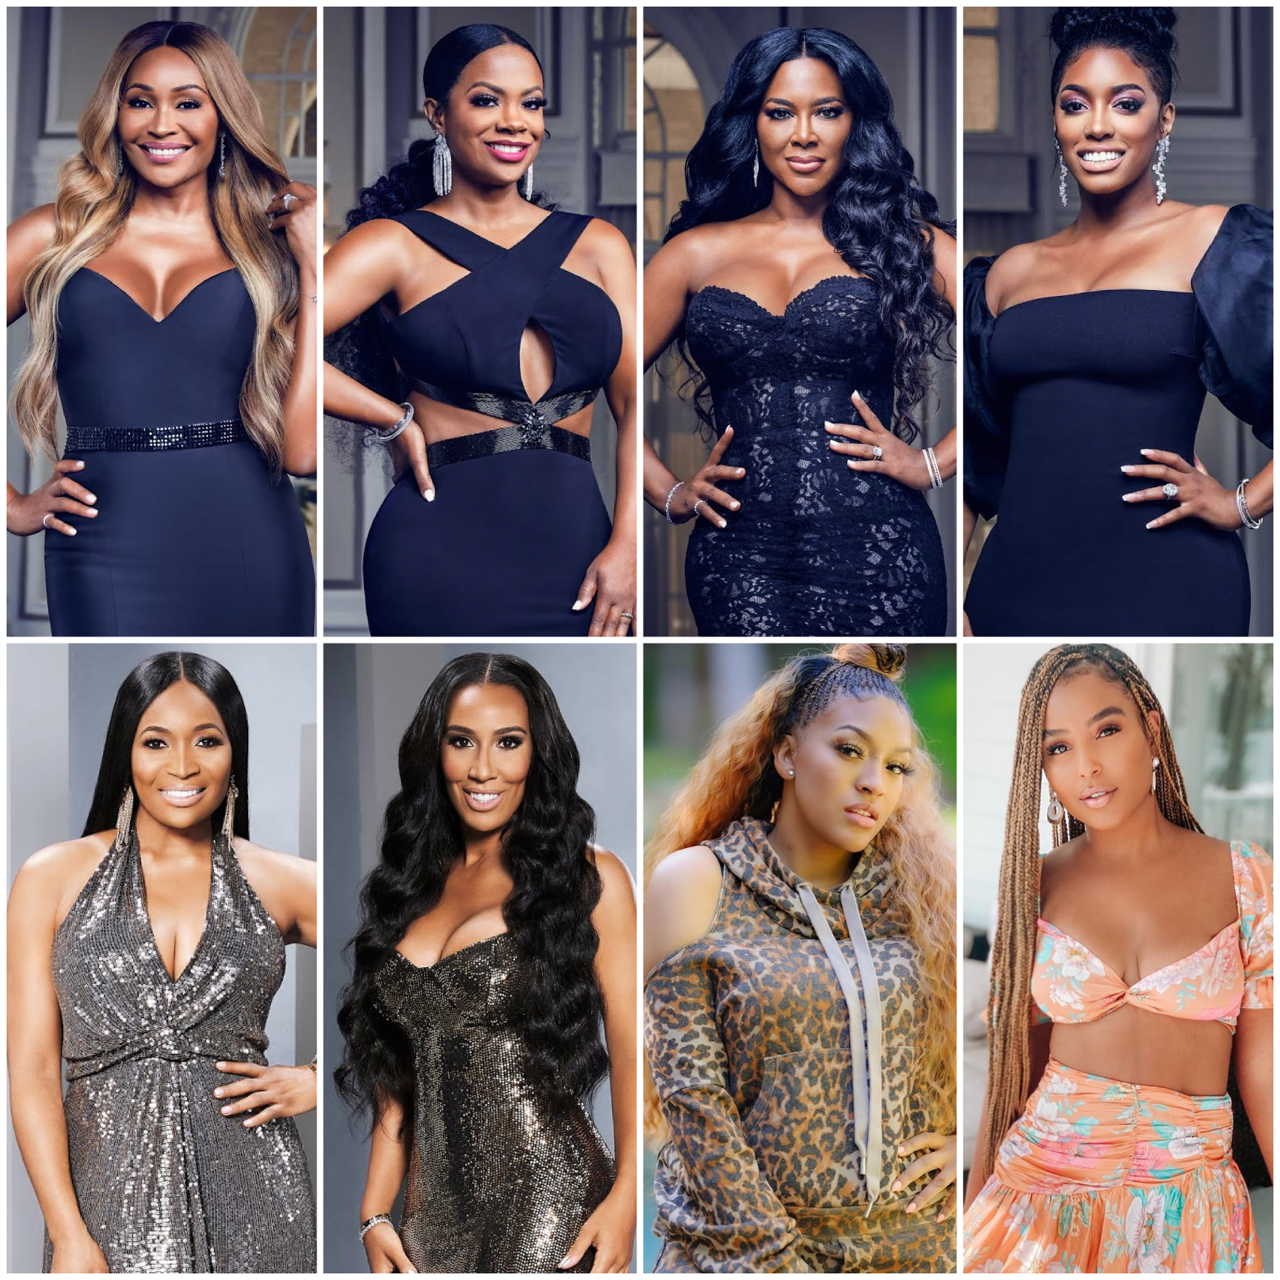 Two RHOA Stars Allegedly Had Threesome With A Male